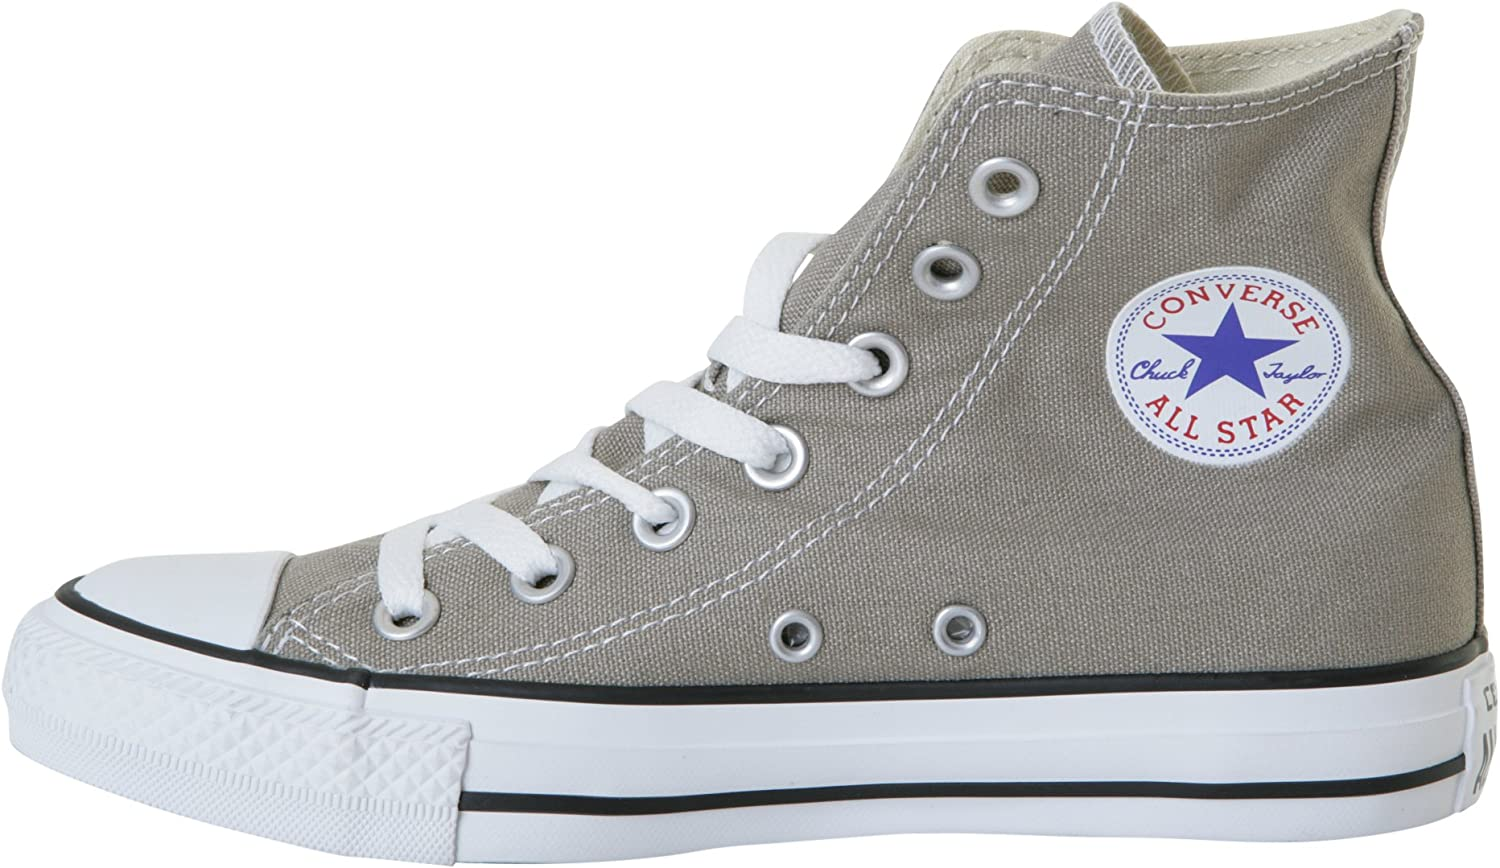 Converse Chuck Taylor High Tops Old